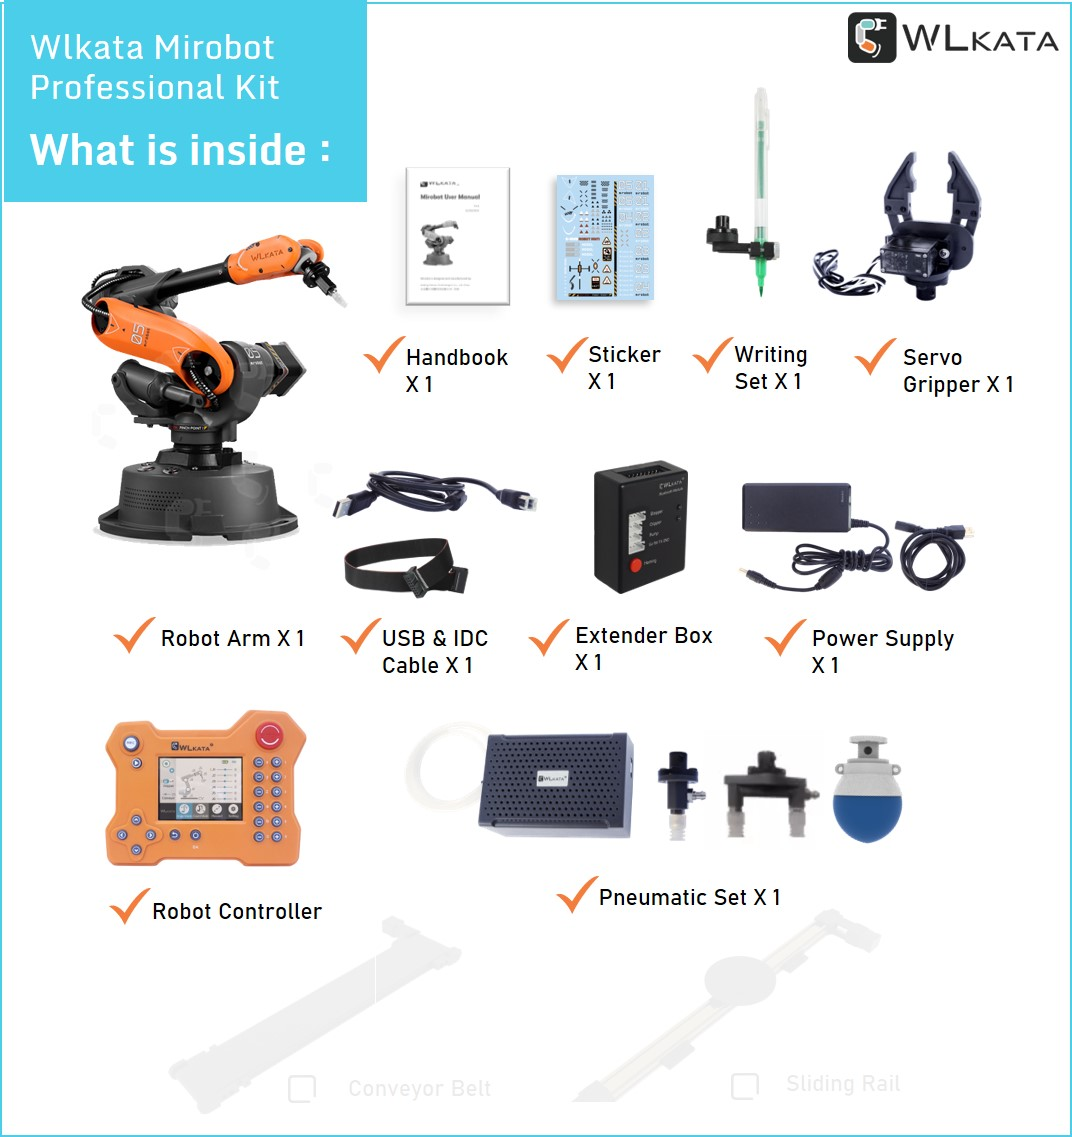 What is inside wlkata mirobot professional kit